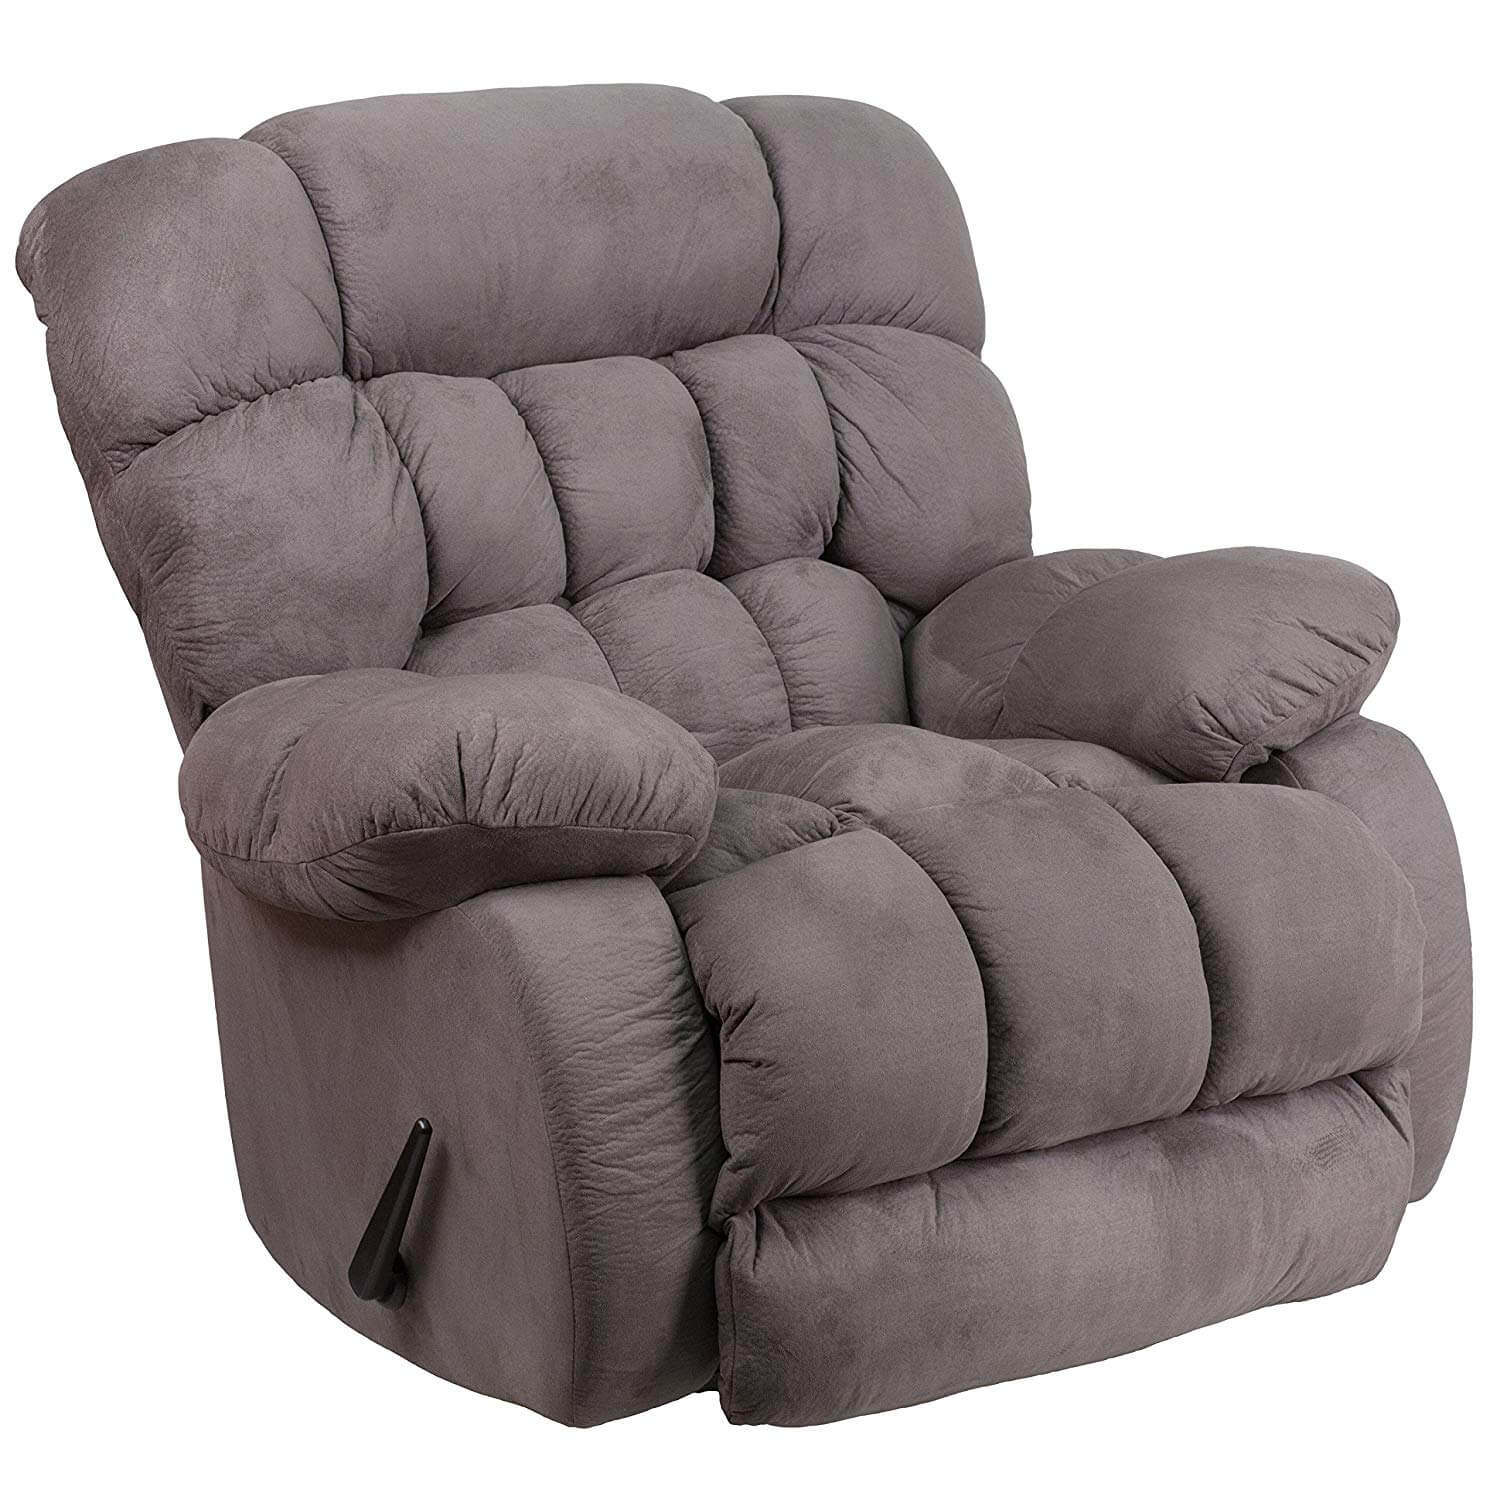 15 Best Recliners Buyers Guide Reviews Ugc